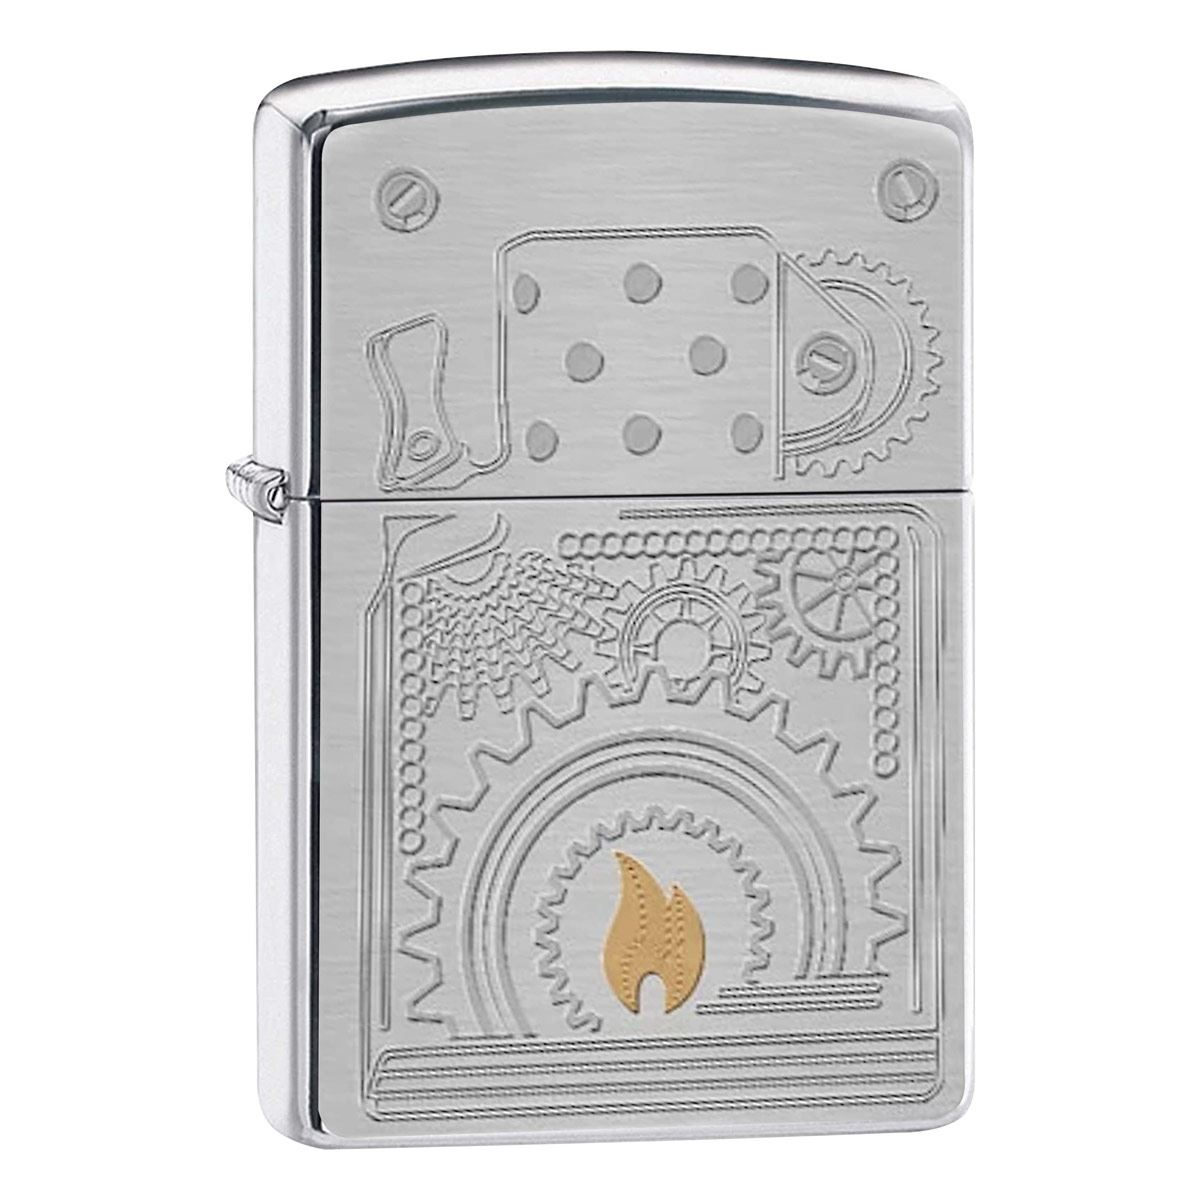 Encendedores Zippo Fall Price Figther Engranaje